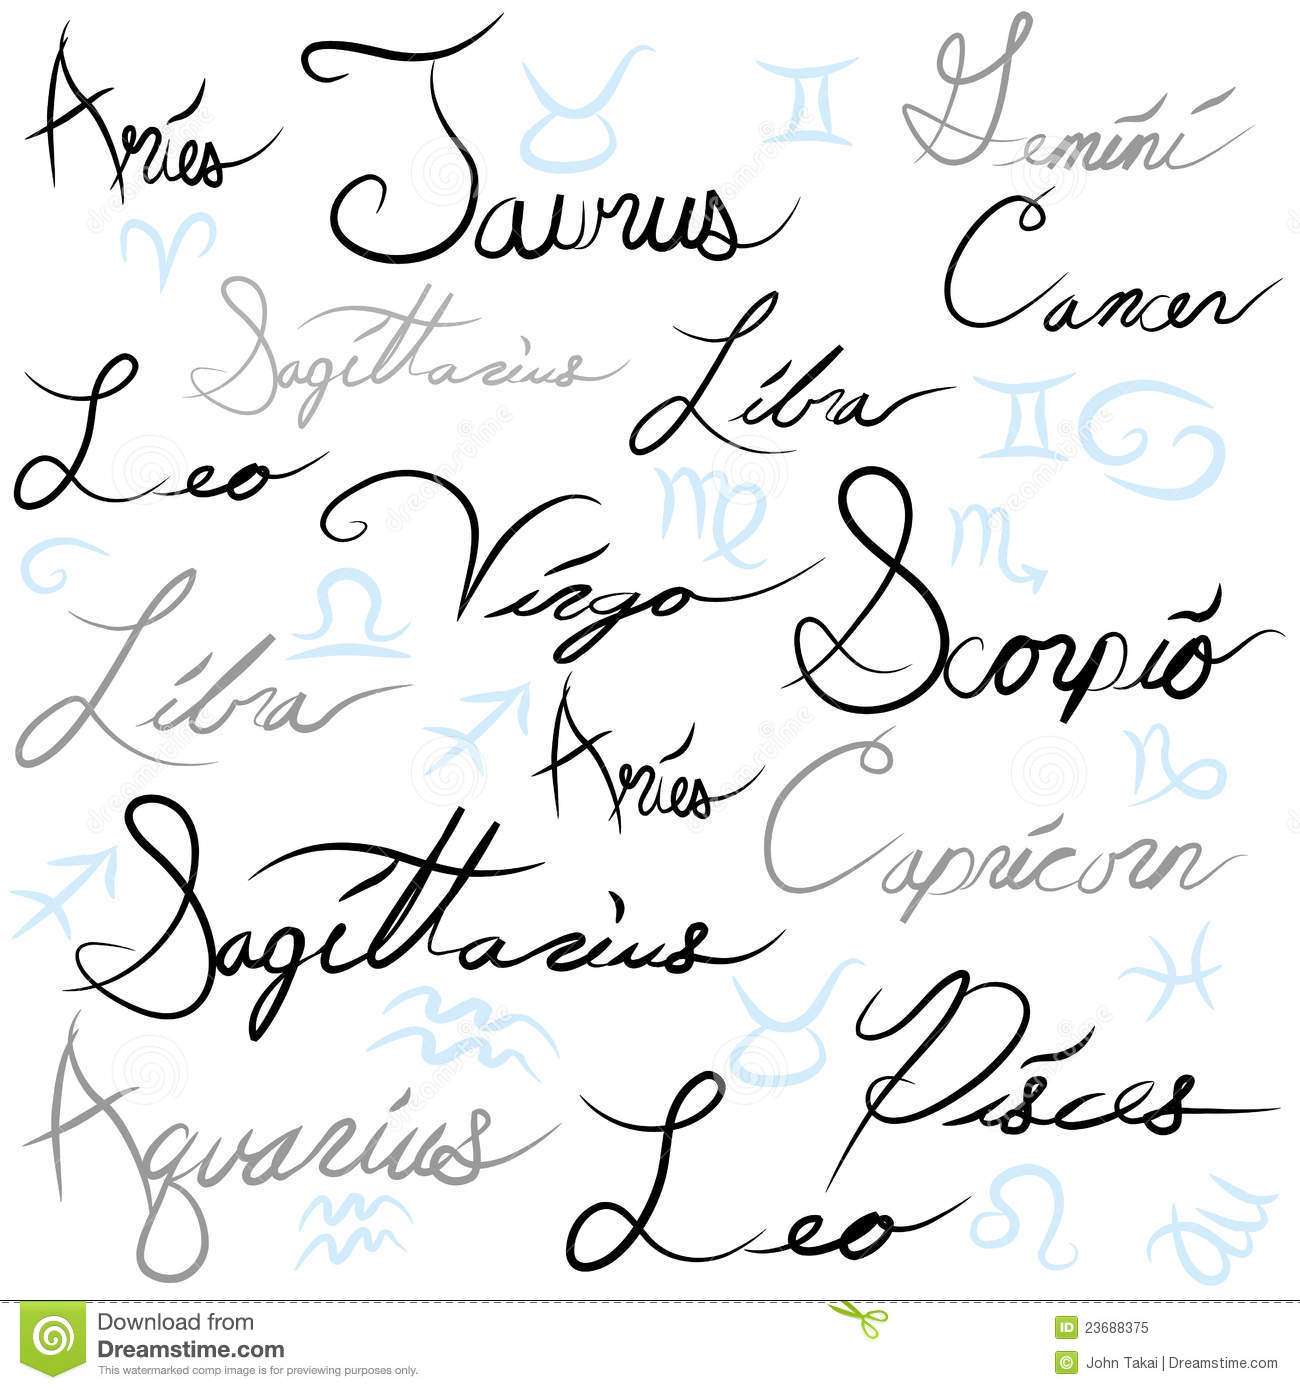 Zodiac sign calligraphy royalty free stock photo image Calligraphy and sign